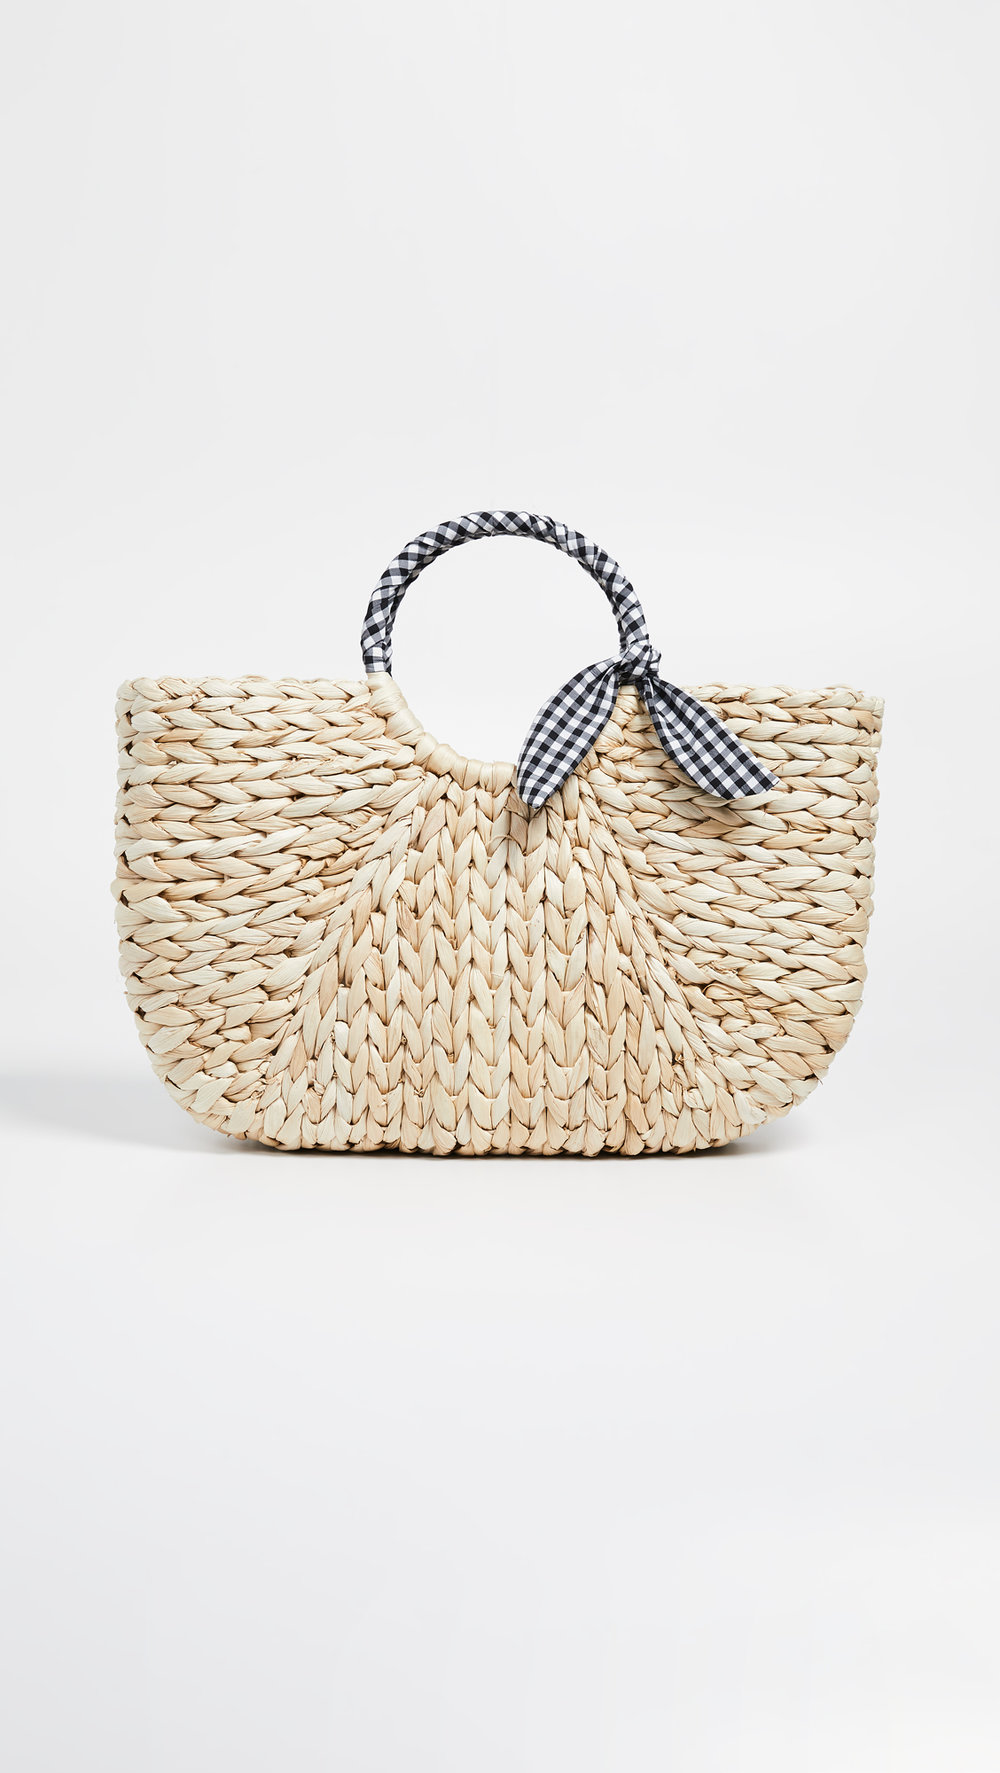 A straw tote - If you're just dipping your toes in the gingham pool, this bag is a great place to start. The pattern just wrapped around the handle lets the bag shine without looking too busy or overwhelming!